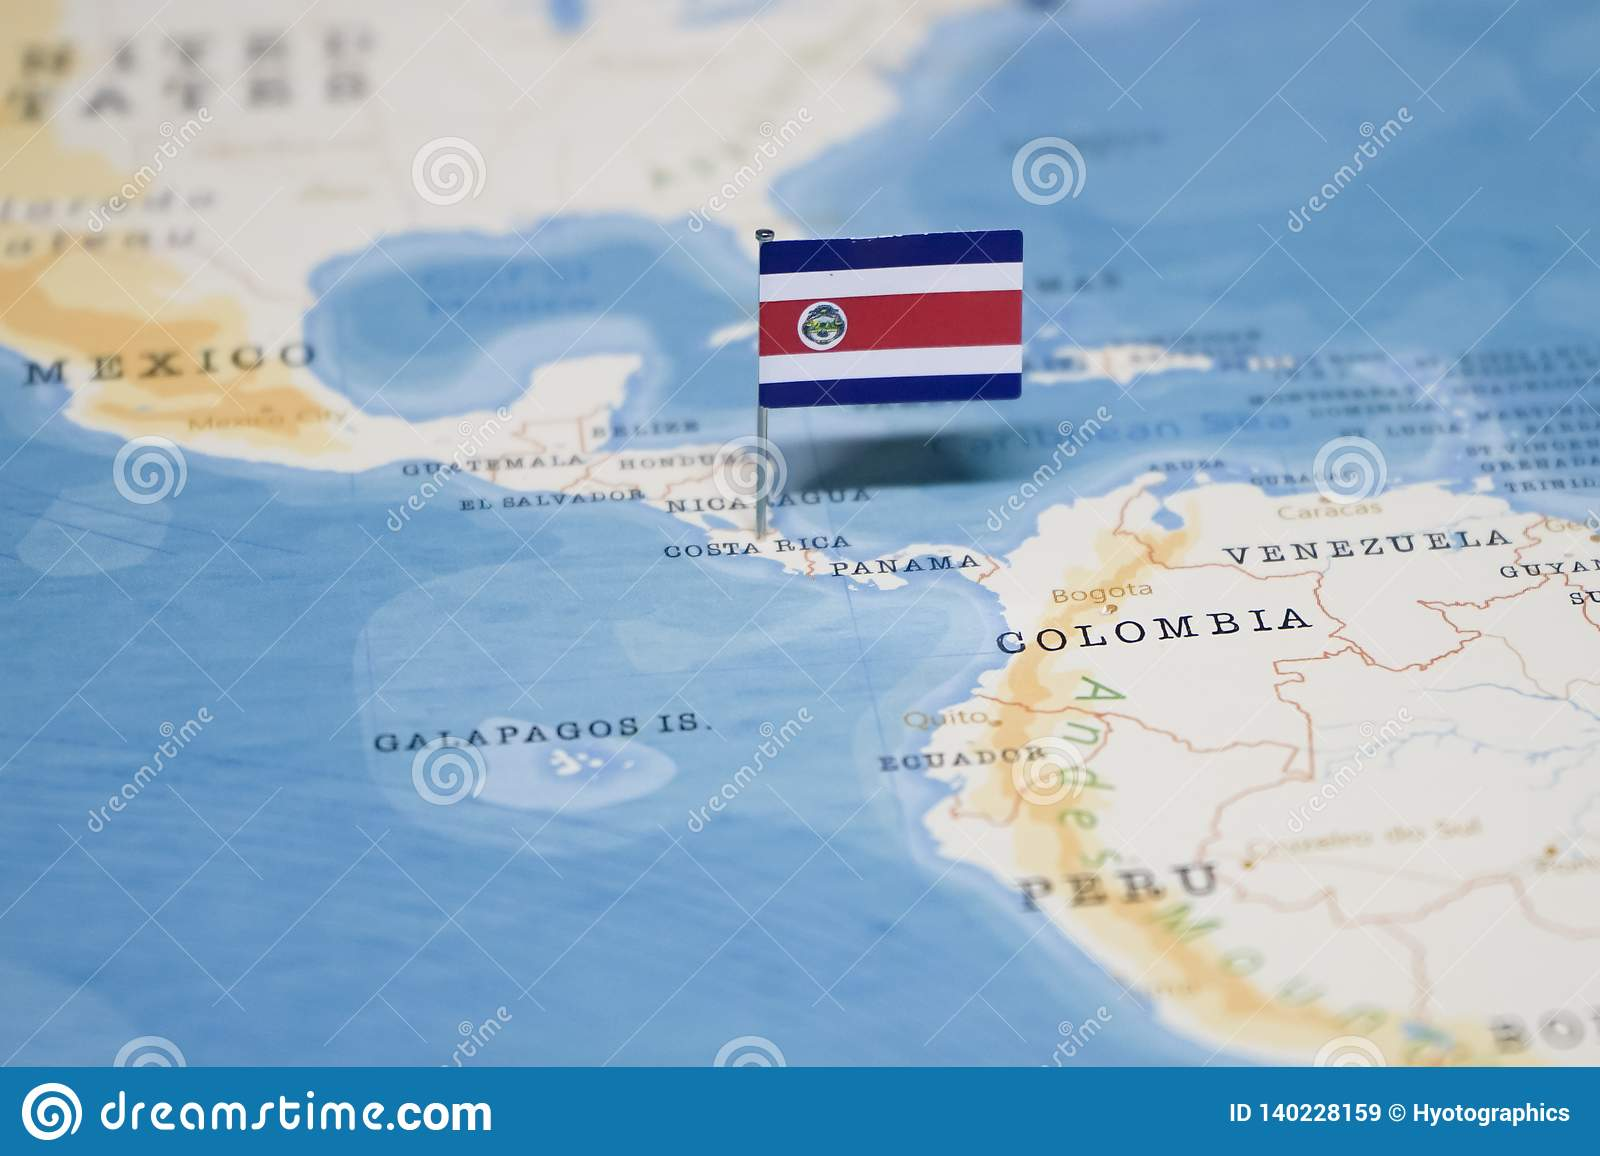 The Flag Of Costa Rica In The World Map Stock Image - Image ...